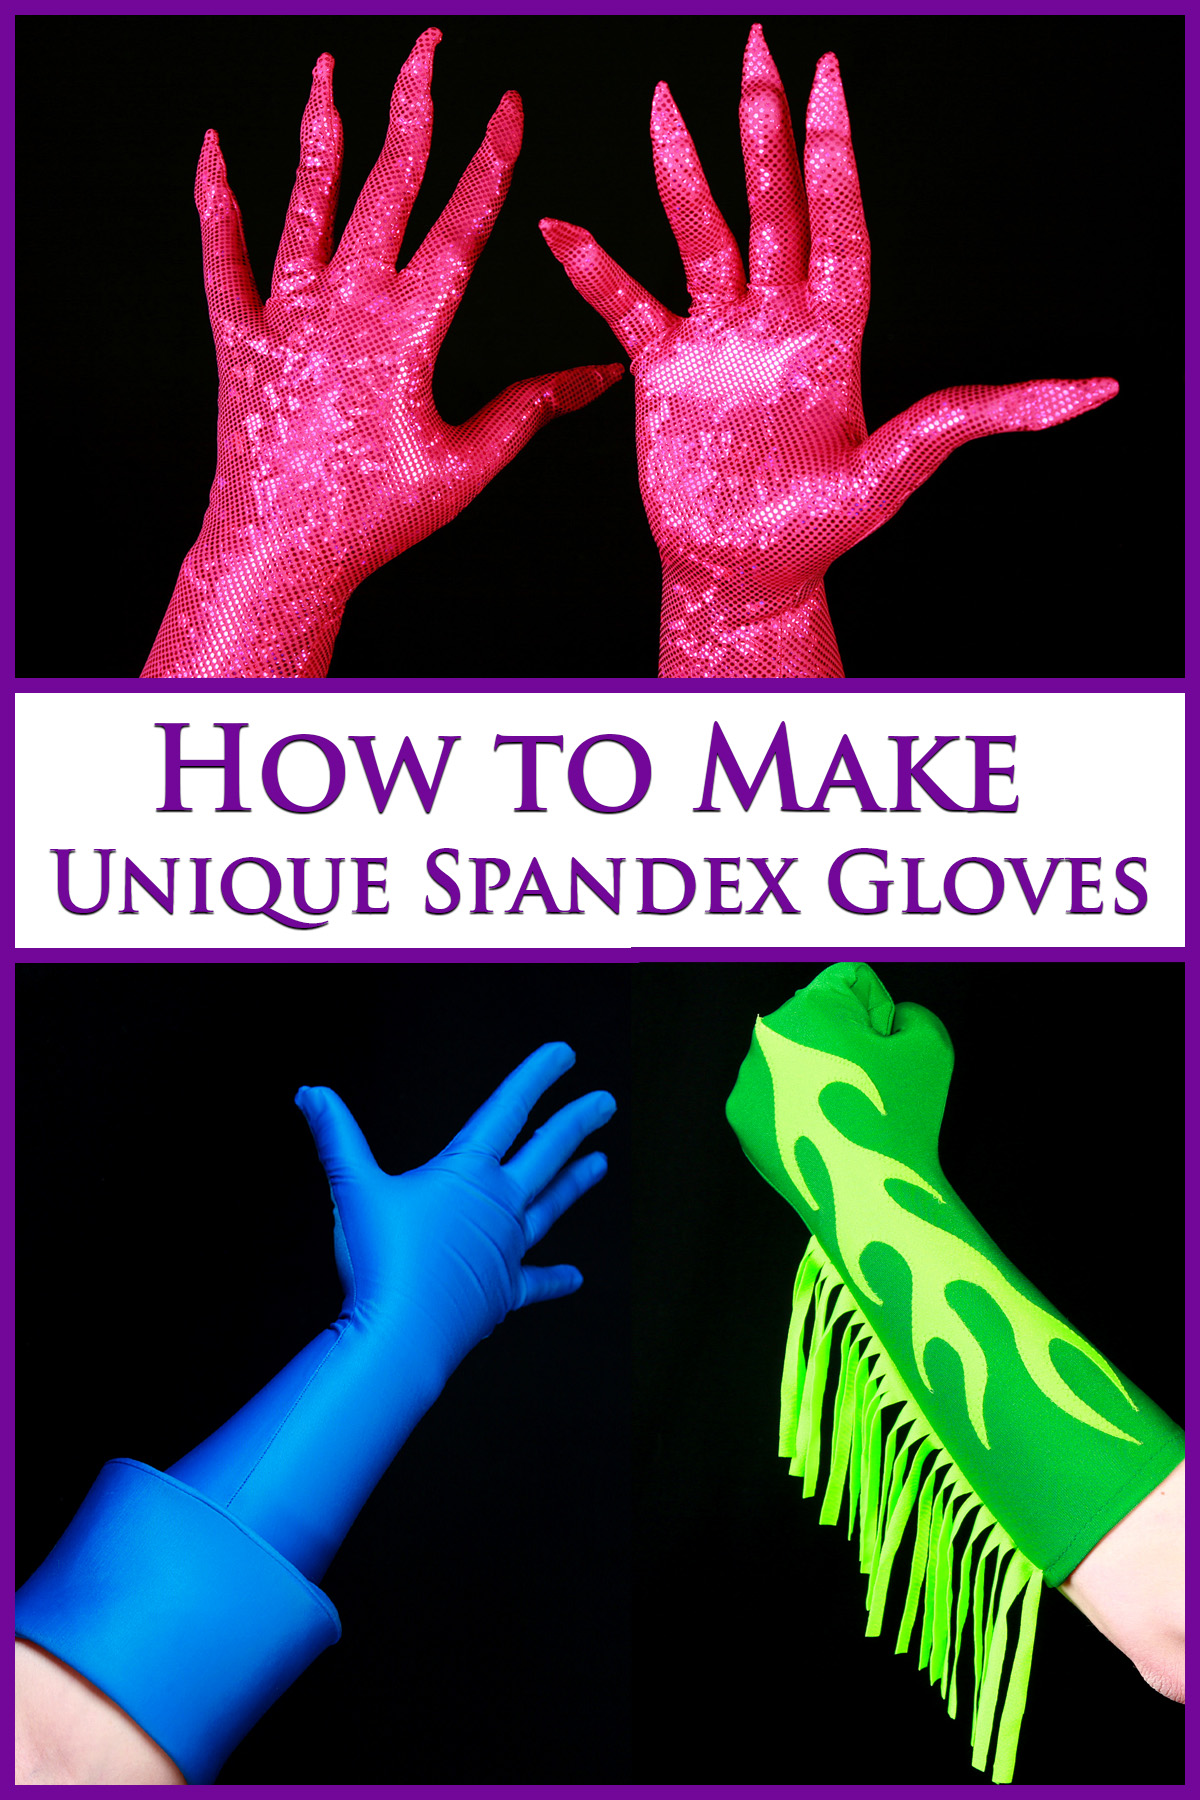 3 photos of gloves - one of two hot pink gloves, one of a green and yellow glove, and one of a blue glove - surround text that sats How to Make Fancy Spandex Gloves.